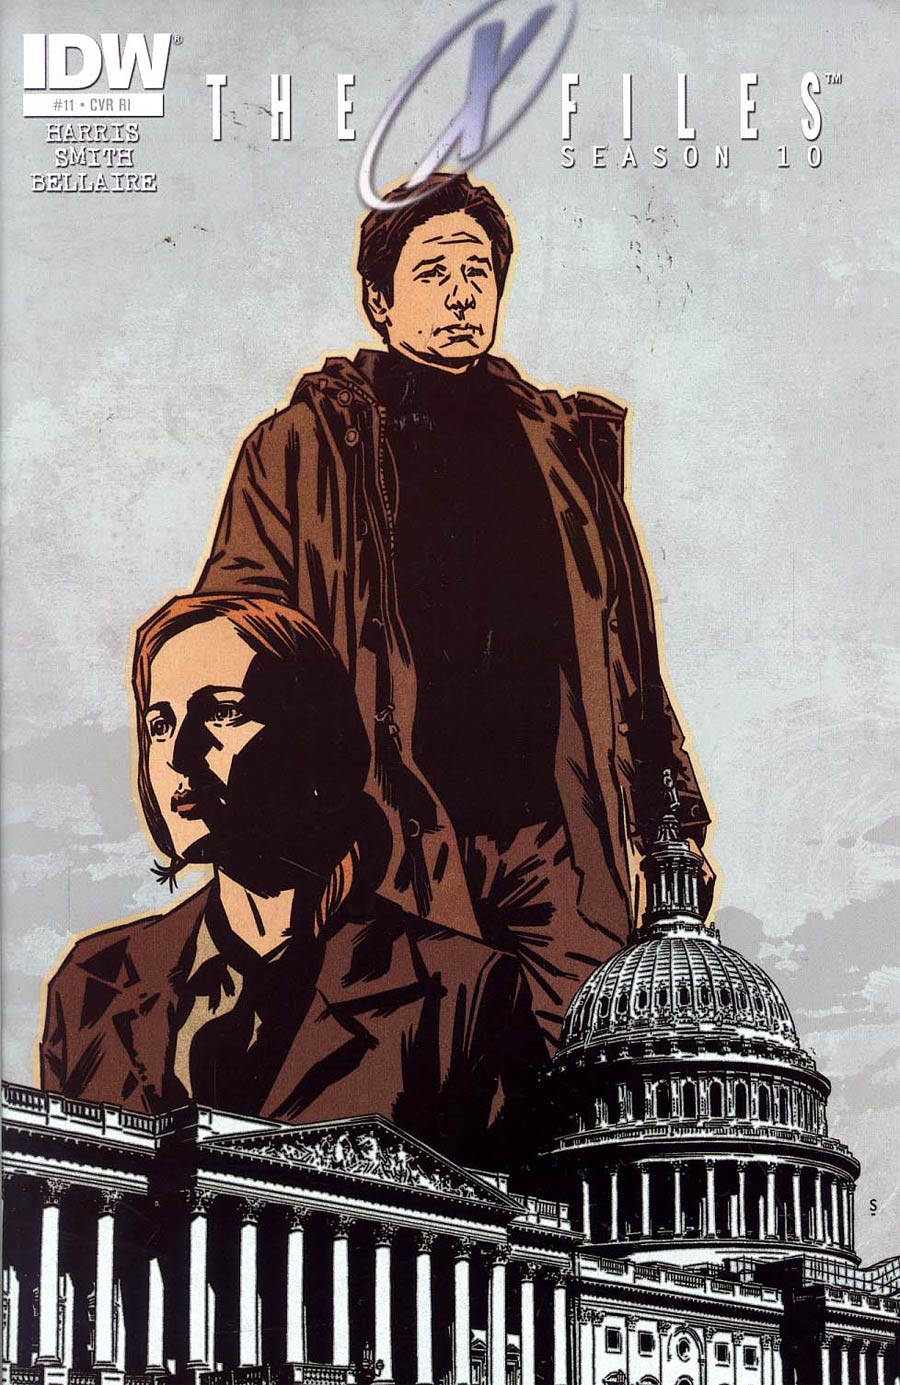 X-Files Season 10 #11 Cover C Incentive Matthew Dow Smith Variant Cover